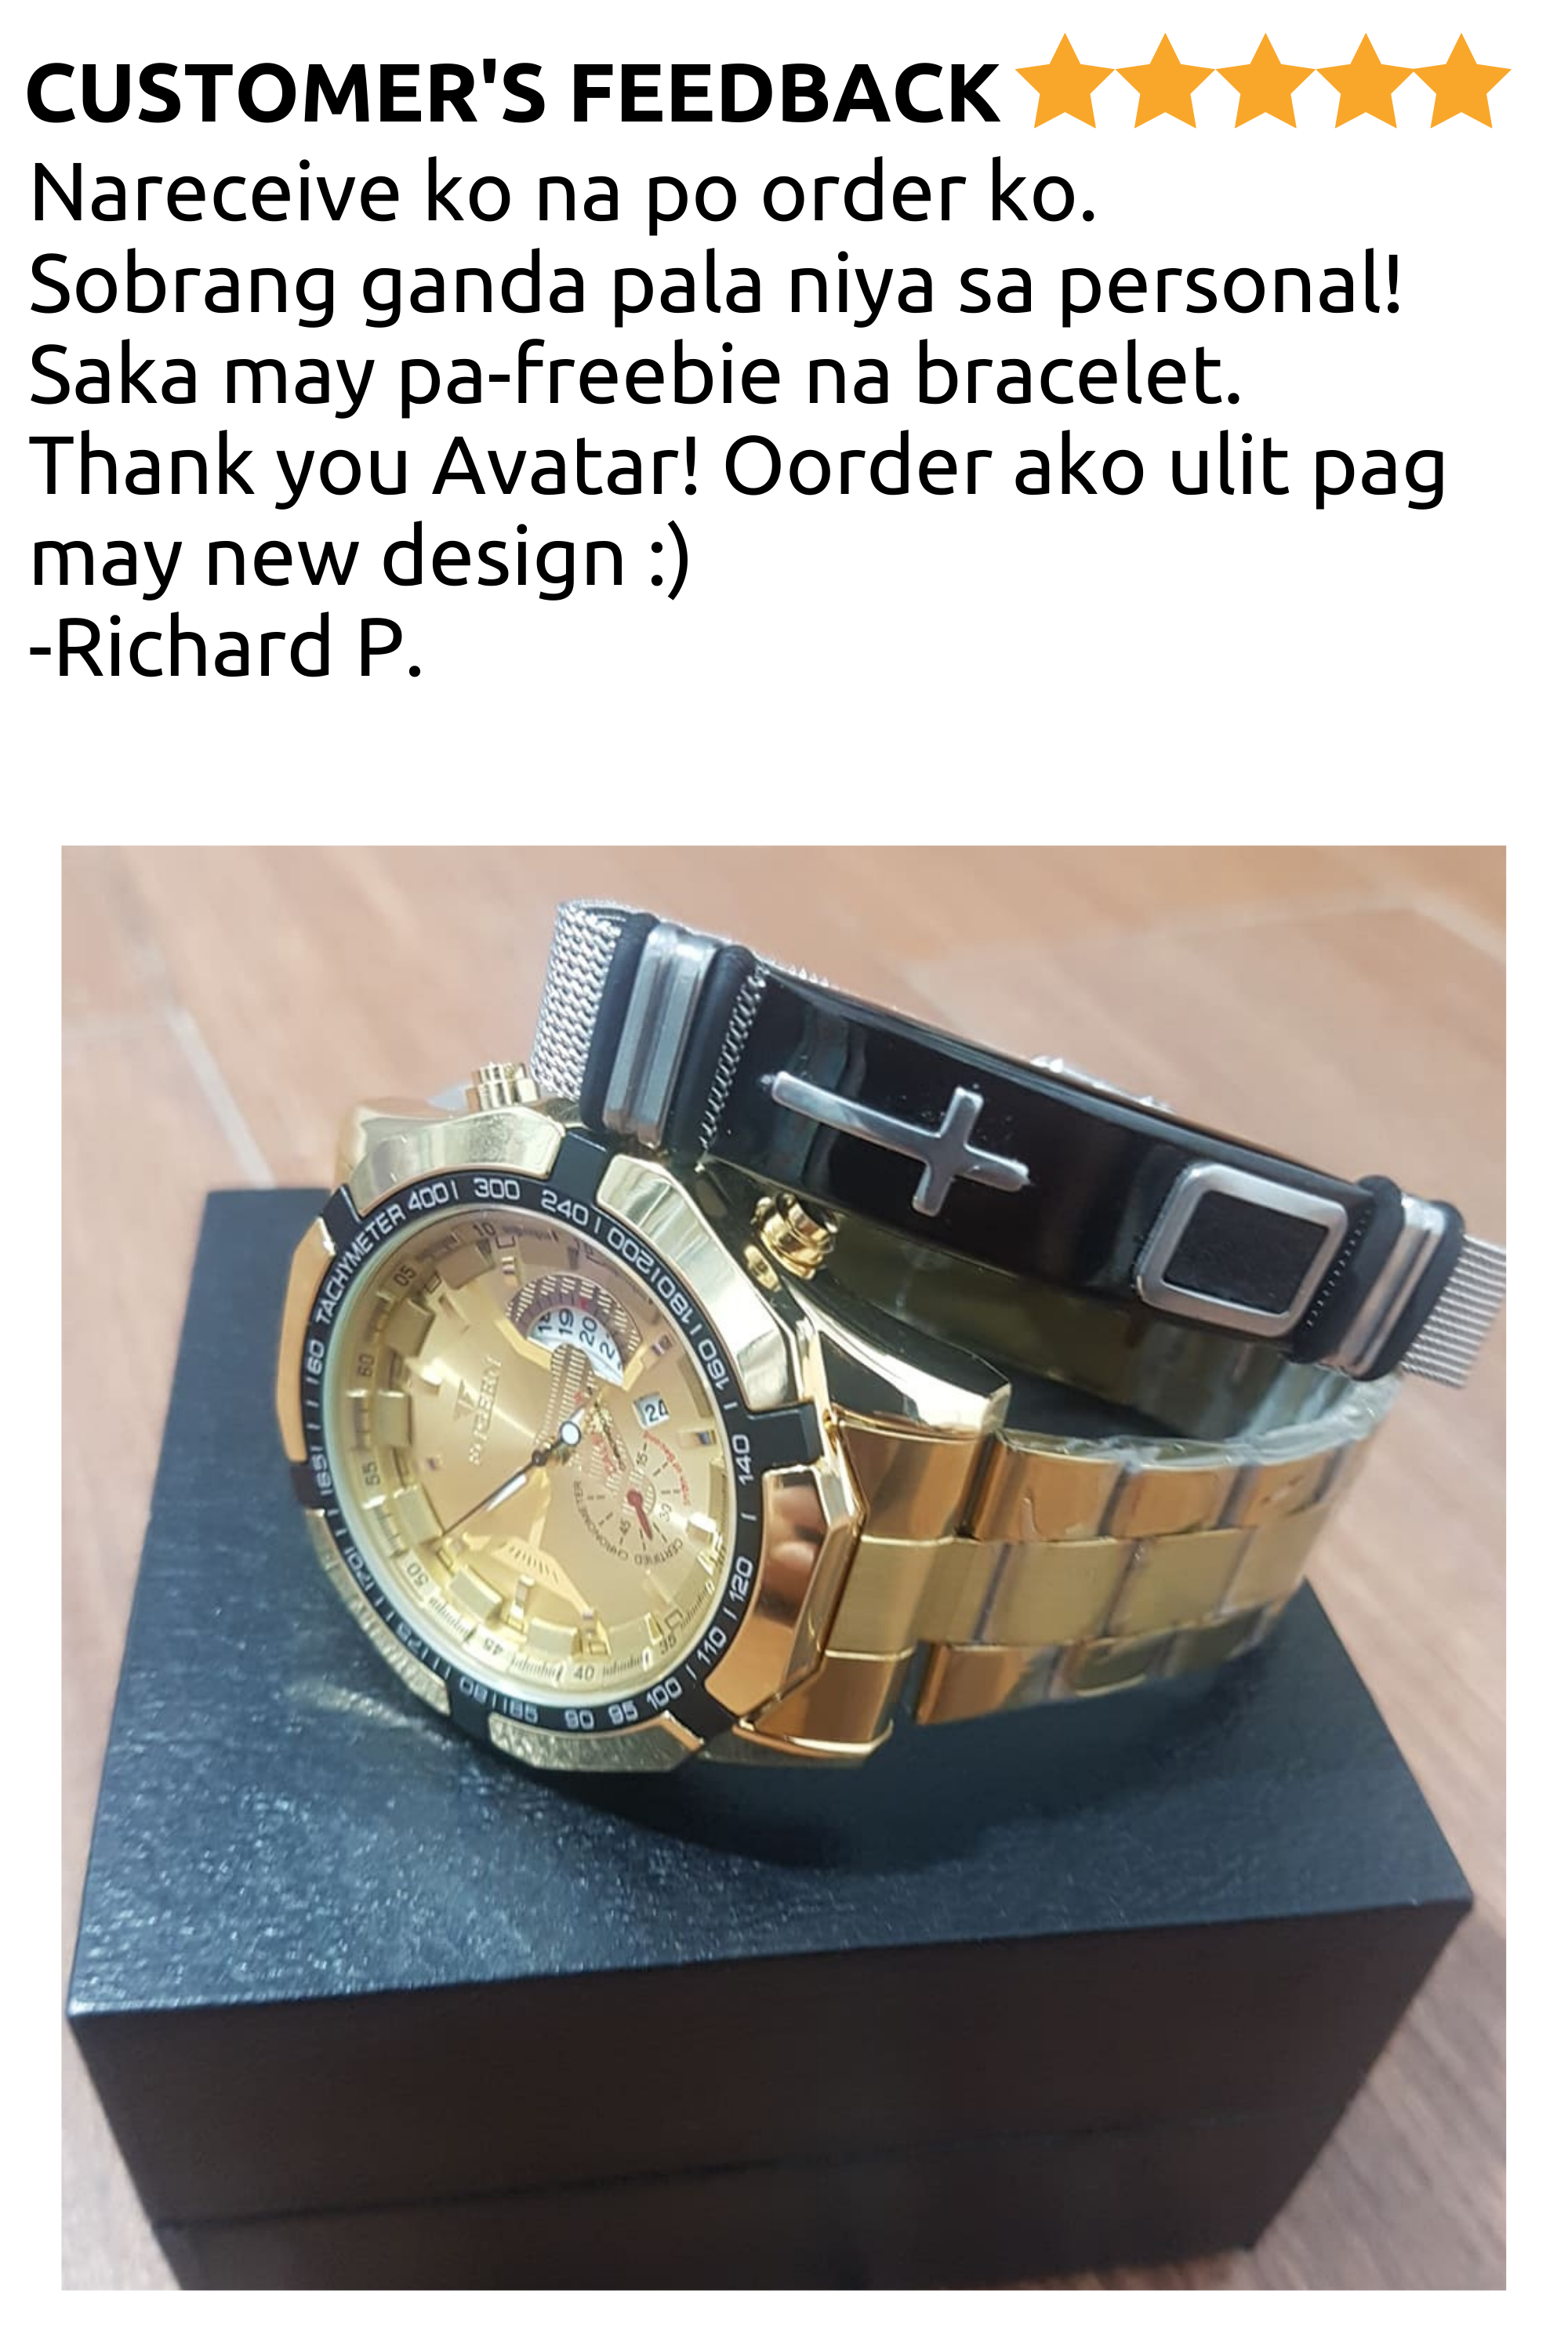 AVATAR LUXURY WATCH W/FREEBIE